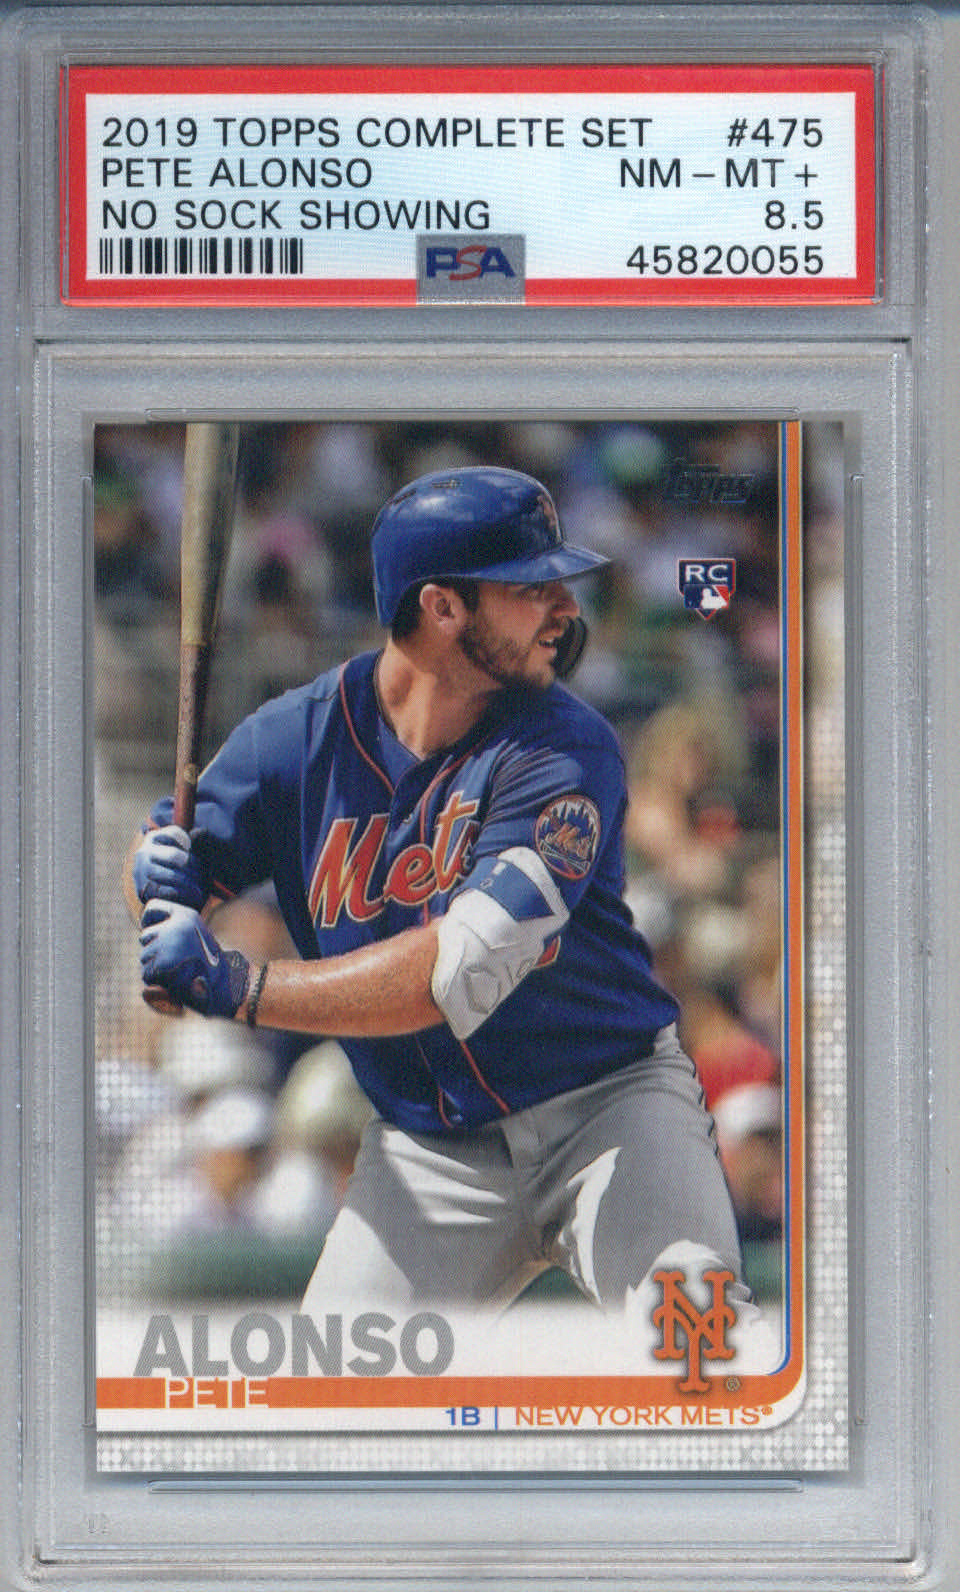 2019 Topps Complete Set No Sock Showing RC #475 Pete Alonso PSA 8.5